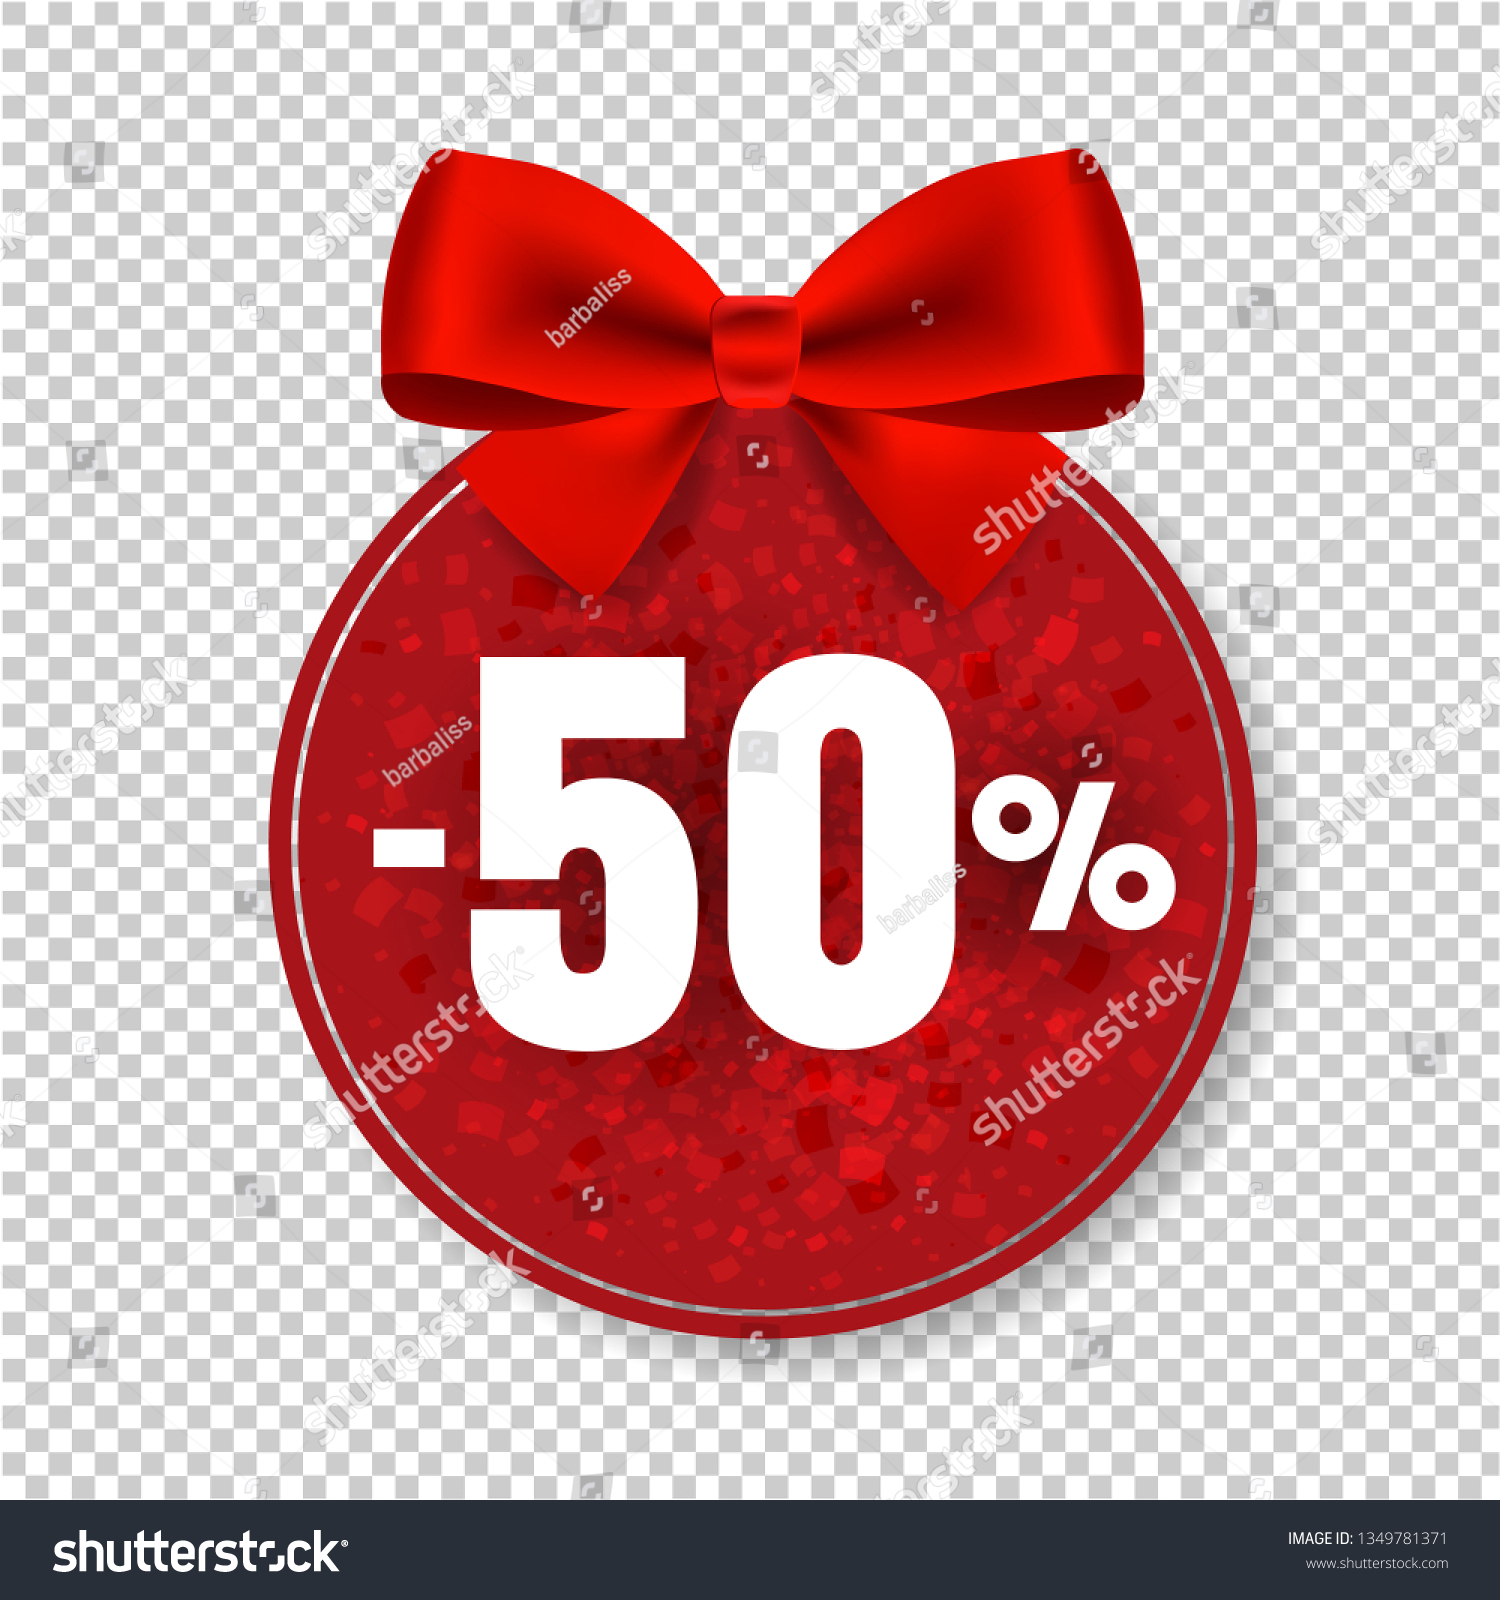 Price Tag Red Bow Isolated Transparent Stock Illustration 1349781371